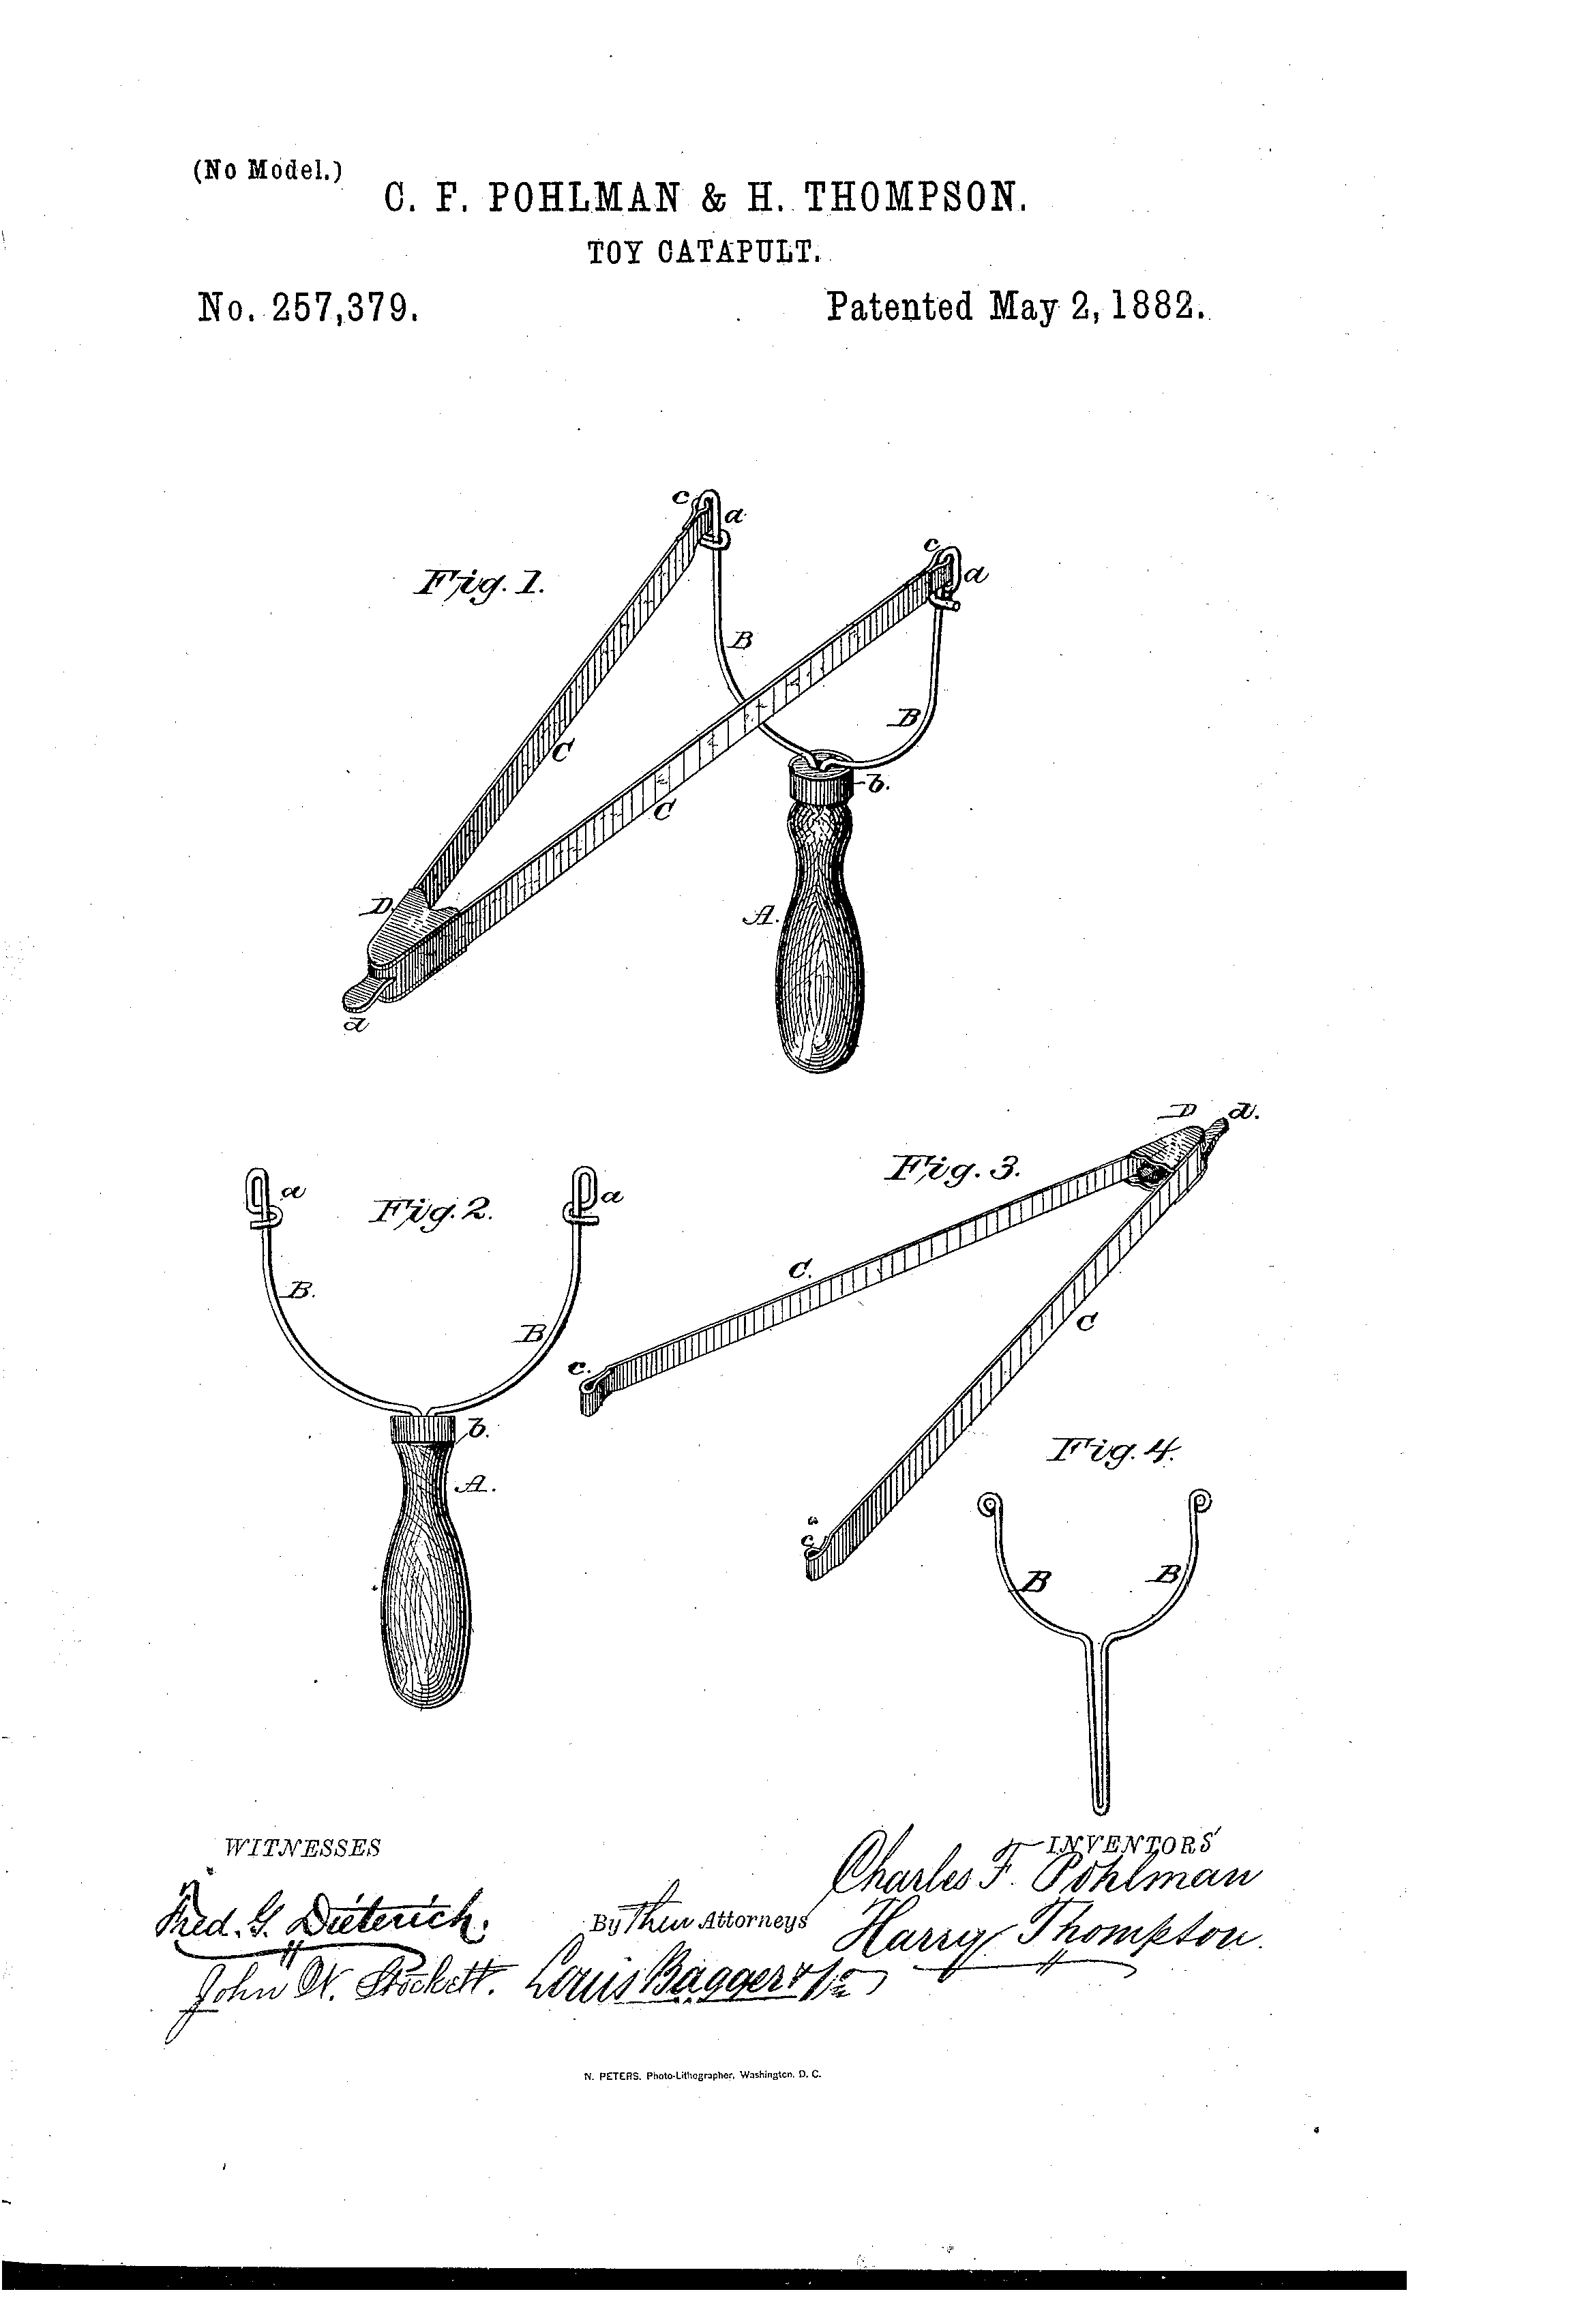 Brevet Us257379 Toy Catapult Google Brevets Diagram Of A Patent Drawing